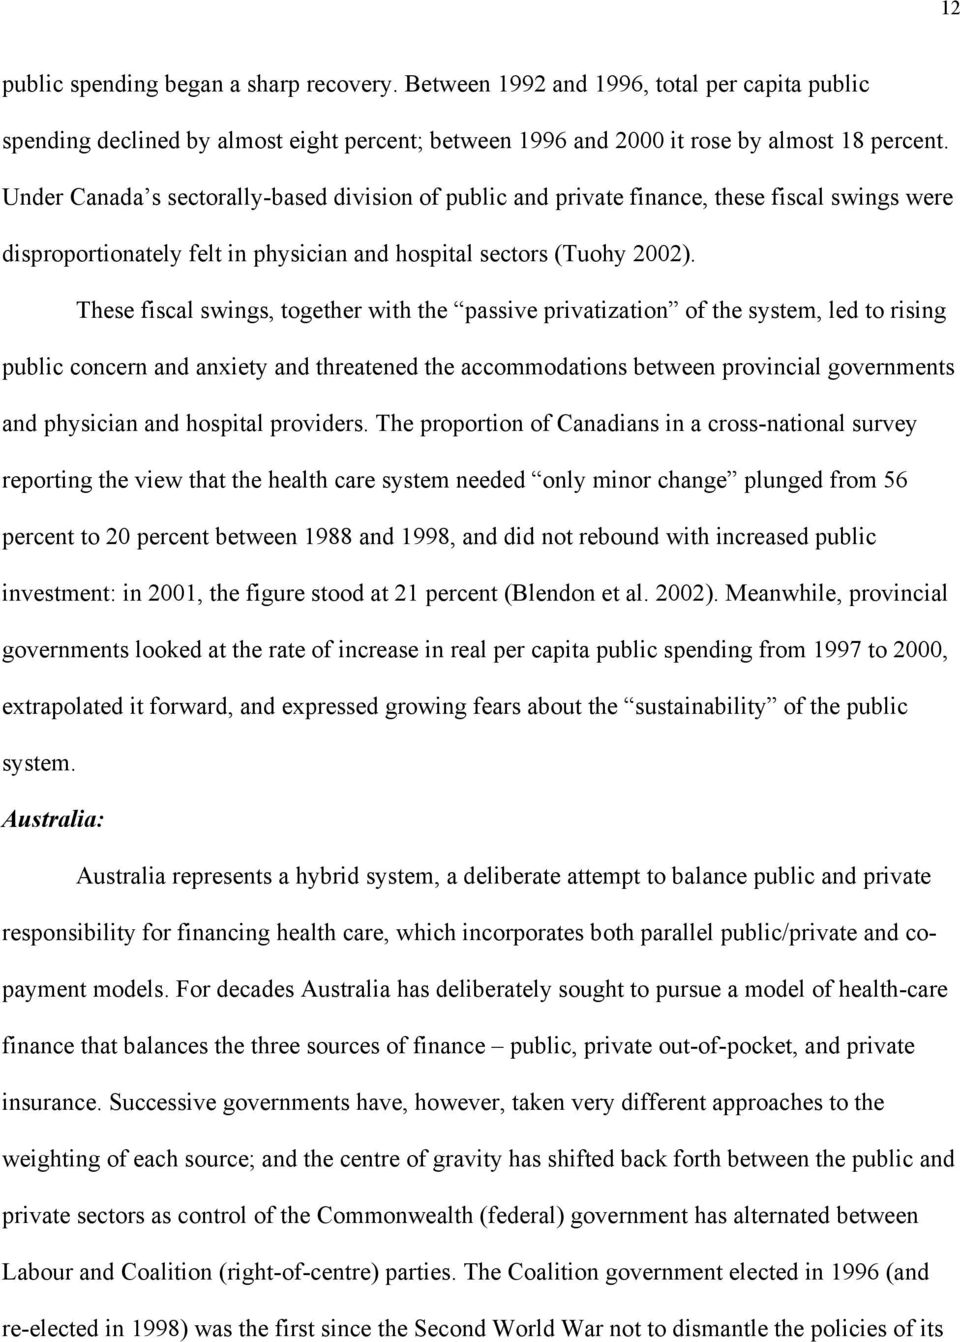 These fiscal swings, together with the passive privatization of the system, led to rising public concern and anxiety and threatened the accommodations between provincial governments and physician and